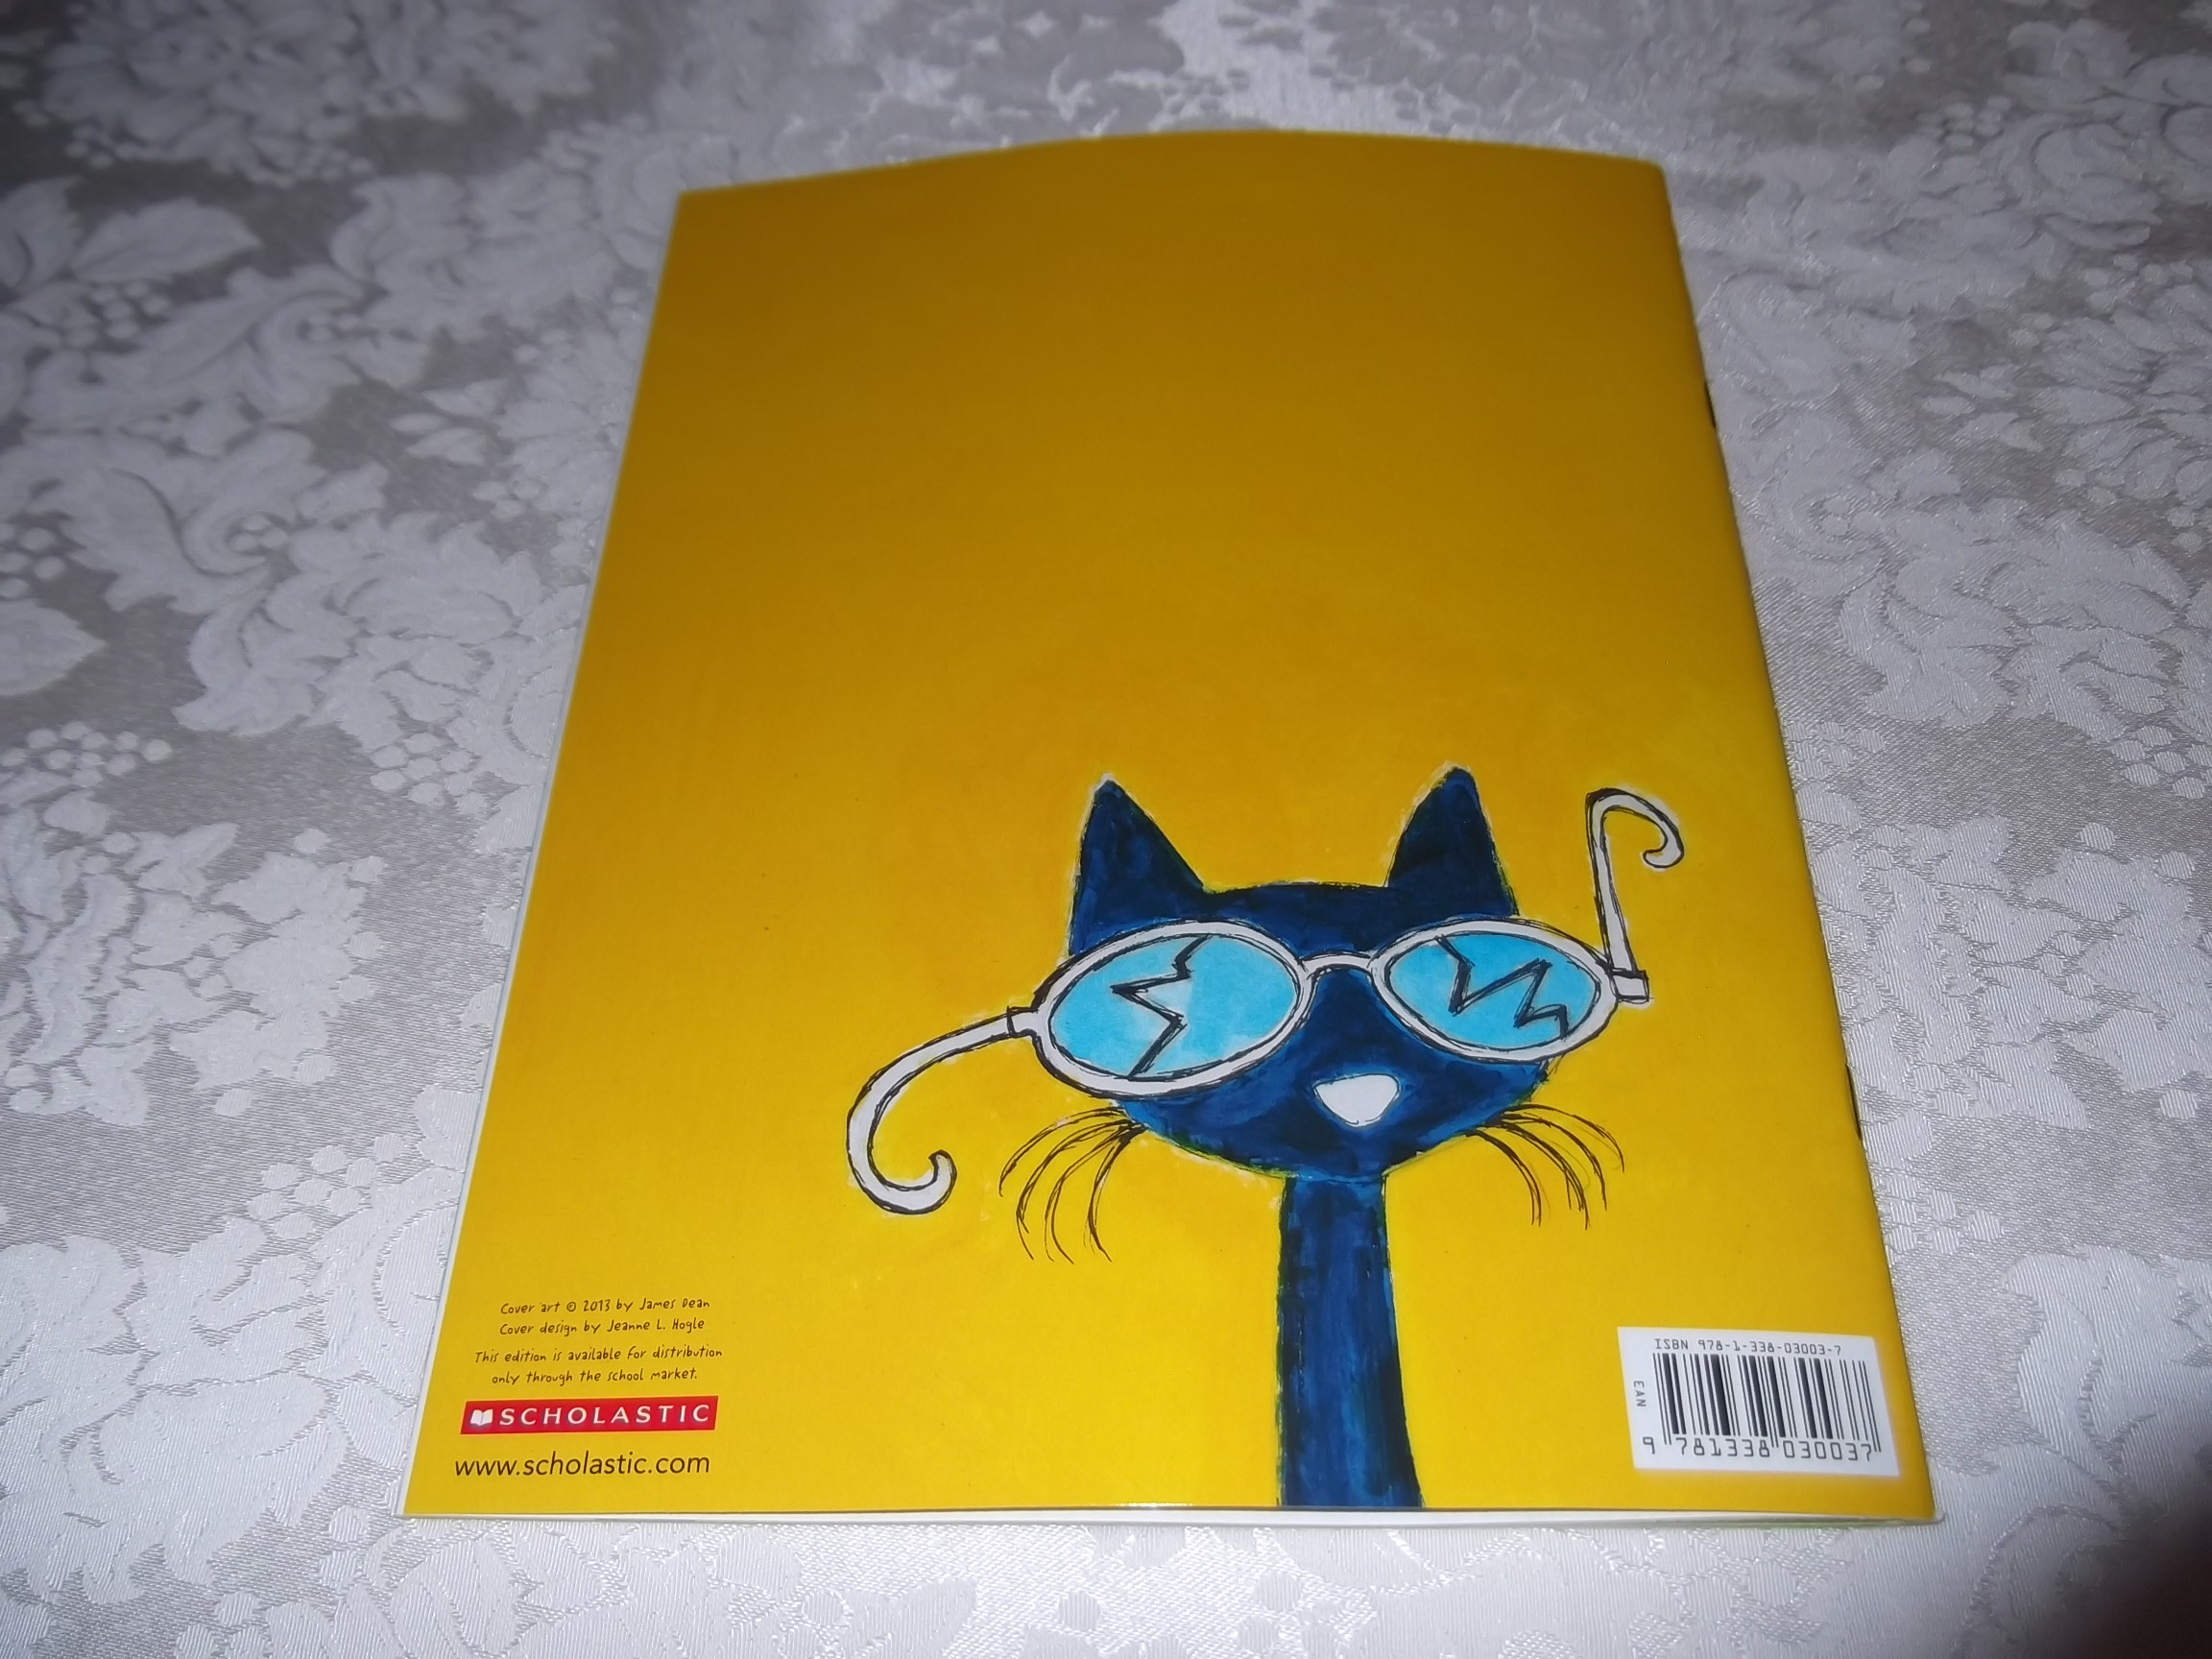 Image 11 of Pete the Cat and His Magic Sunglasses Kimberly and James Dean Brand New SC